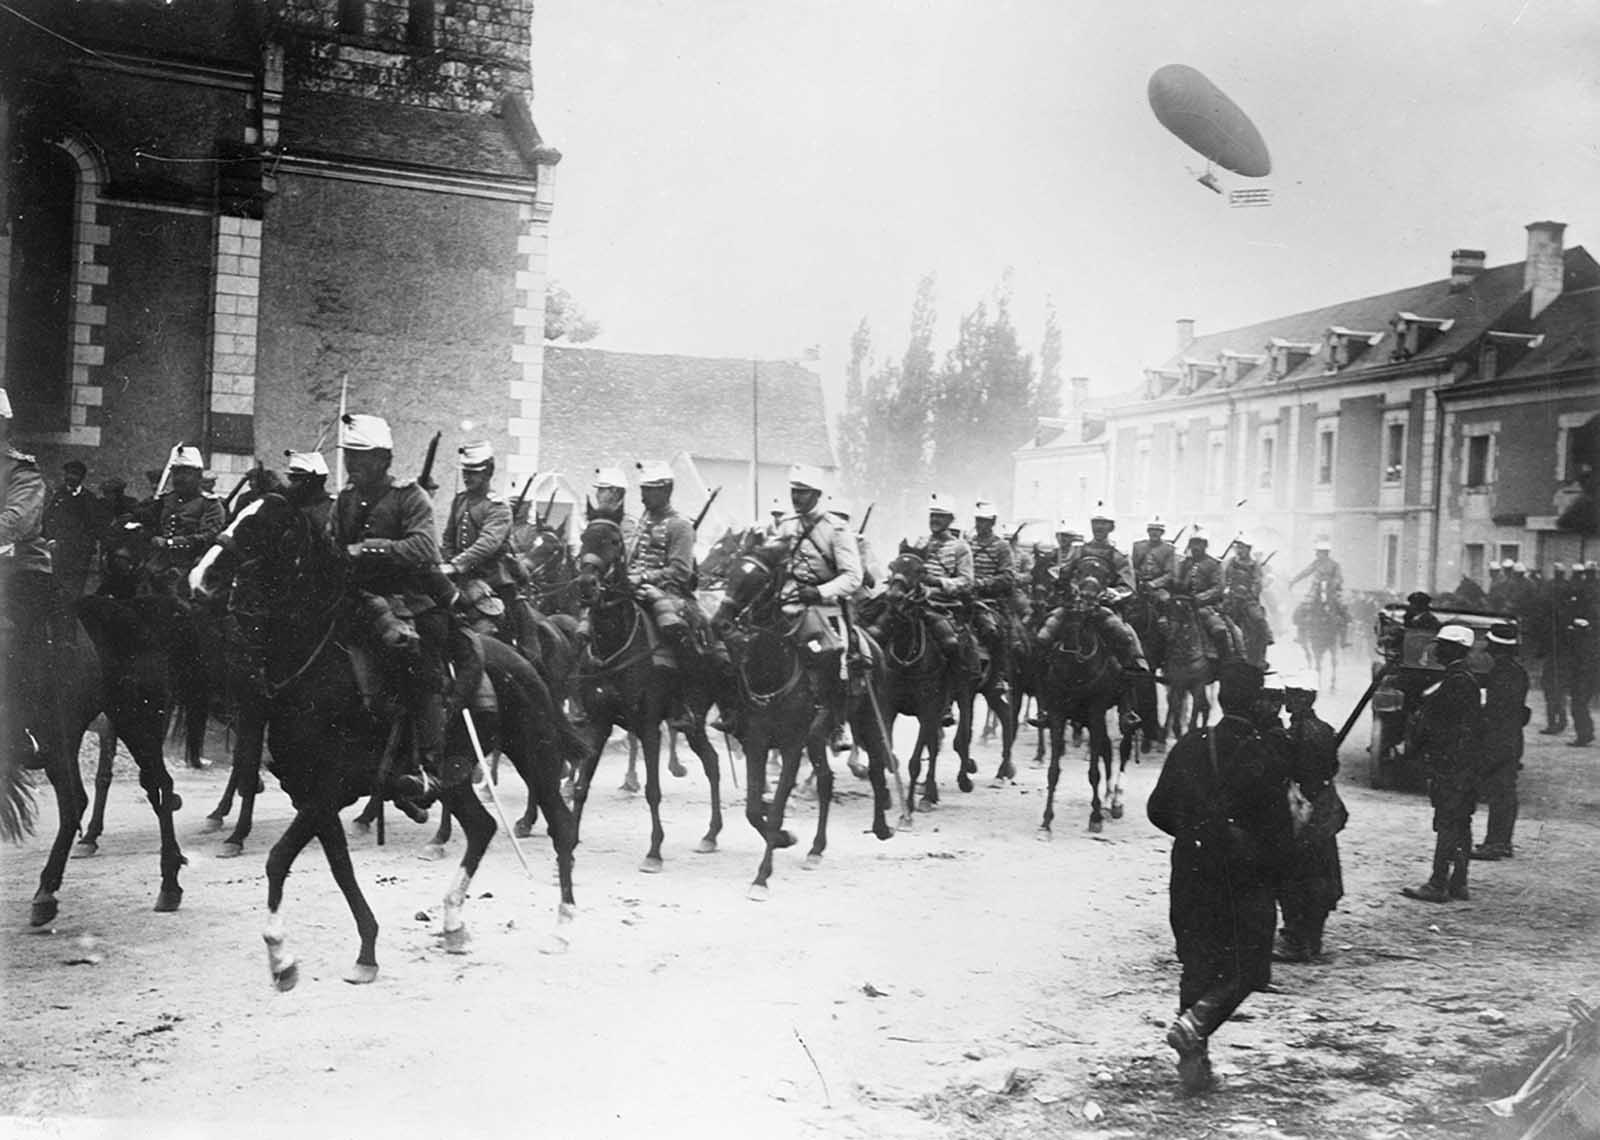 French soldiers on horseback in street, with an airship